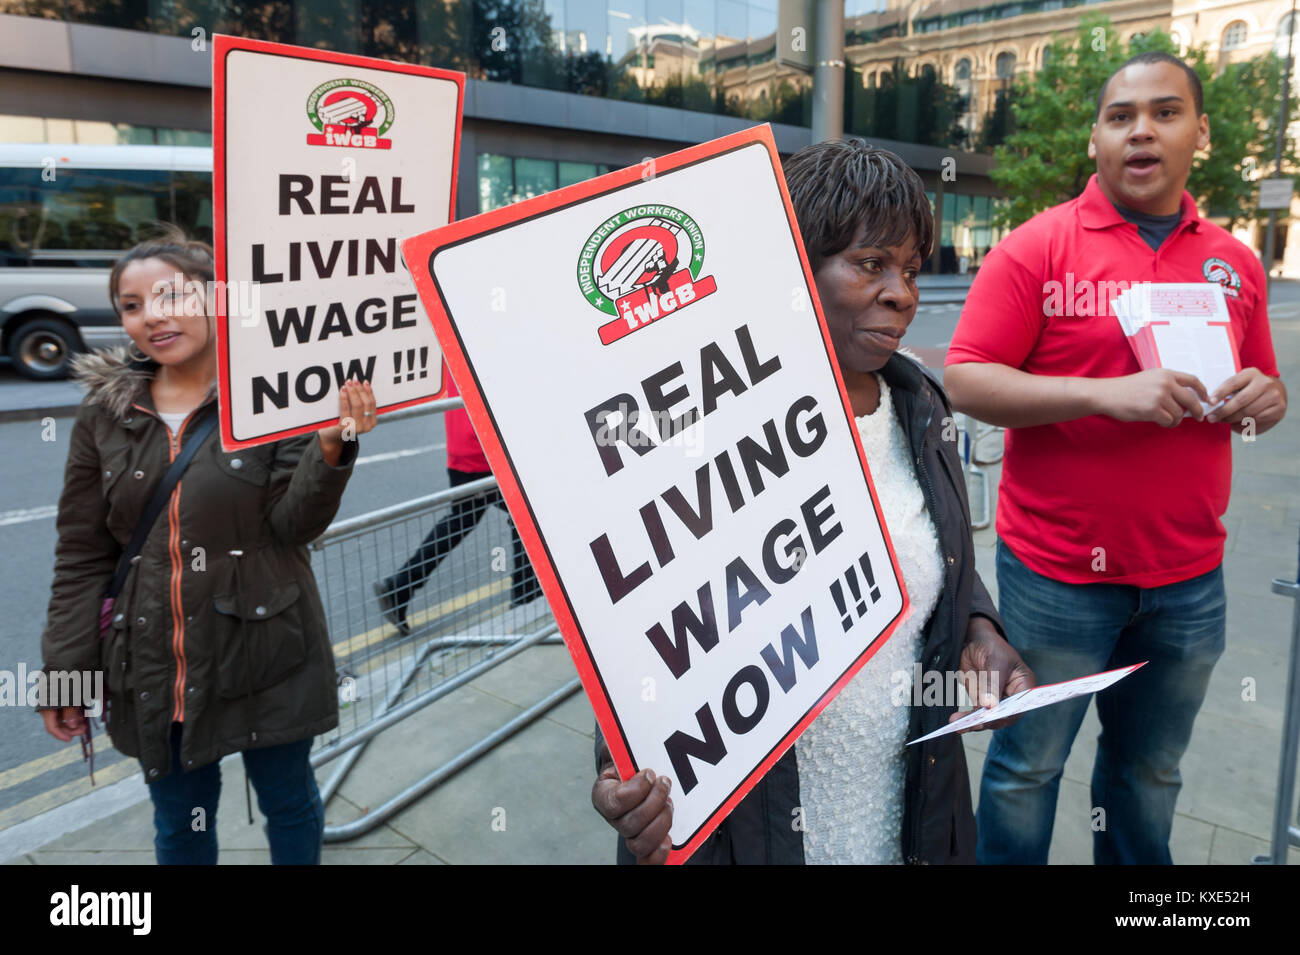 IWGB protesters hold placards 'Real Living Wage Now!!!' outside Southwark Crown Court in a protest for the - Stock Image